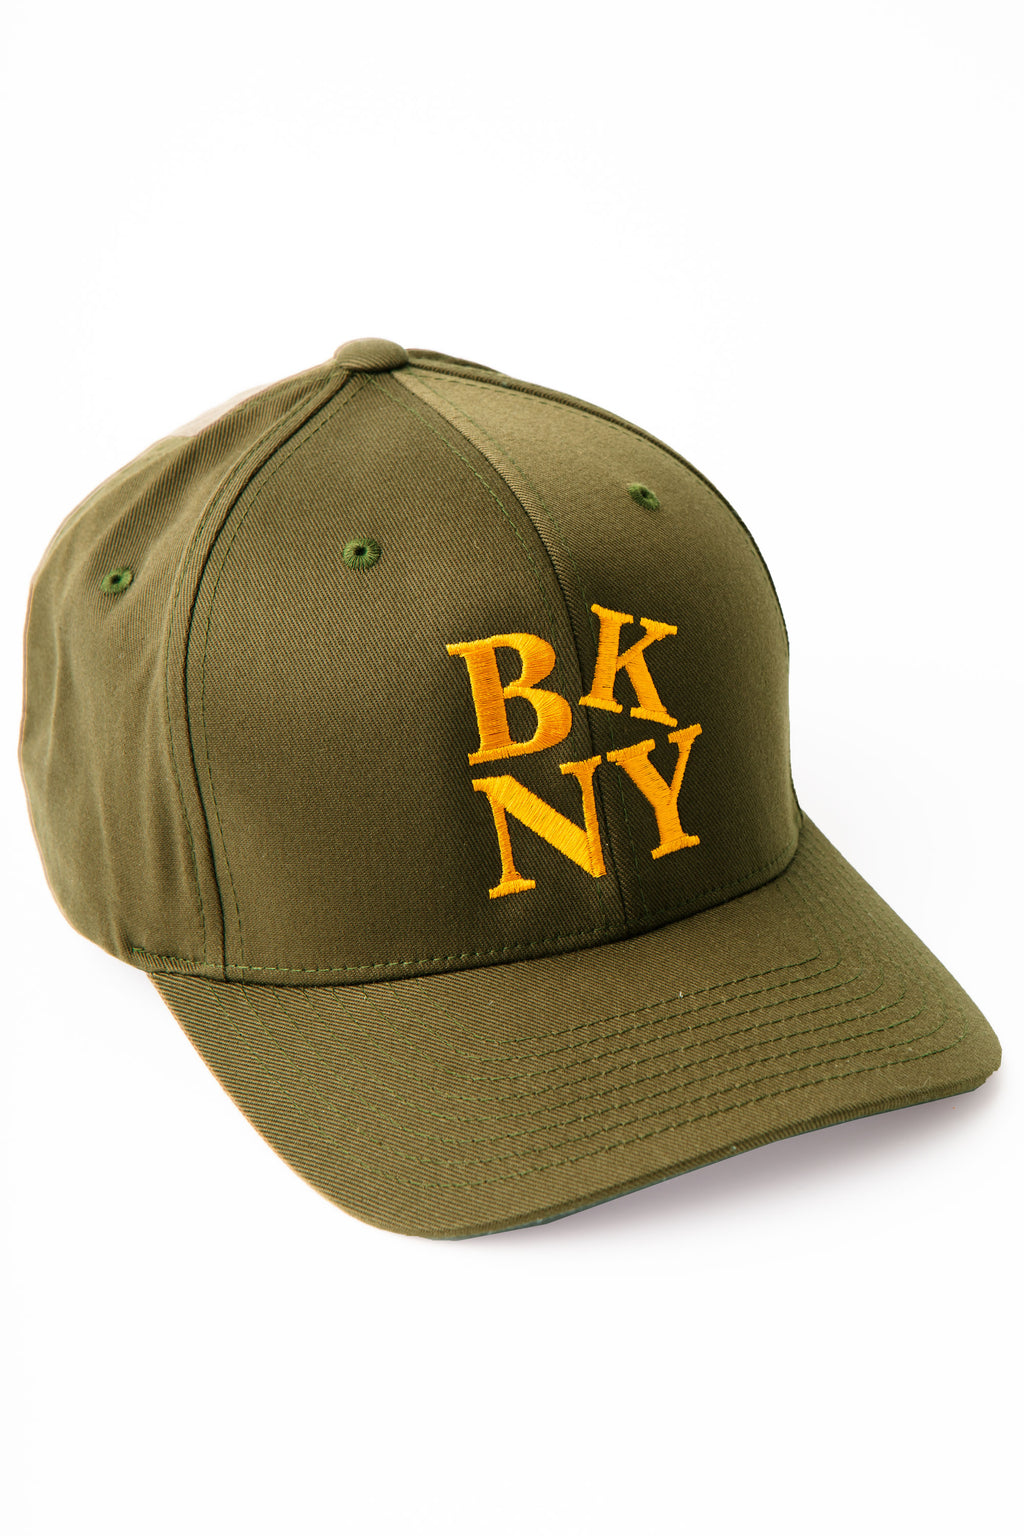 Baseball cap in olive with gold embroidered lettering BKNY.  The K of the letters is tilted slightly to the right.